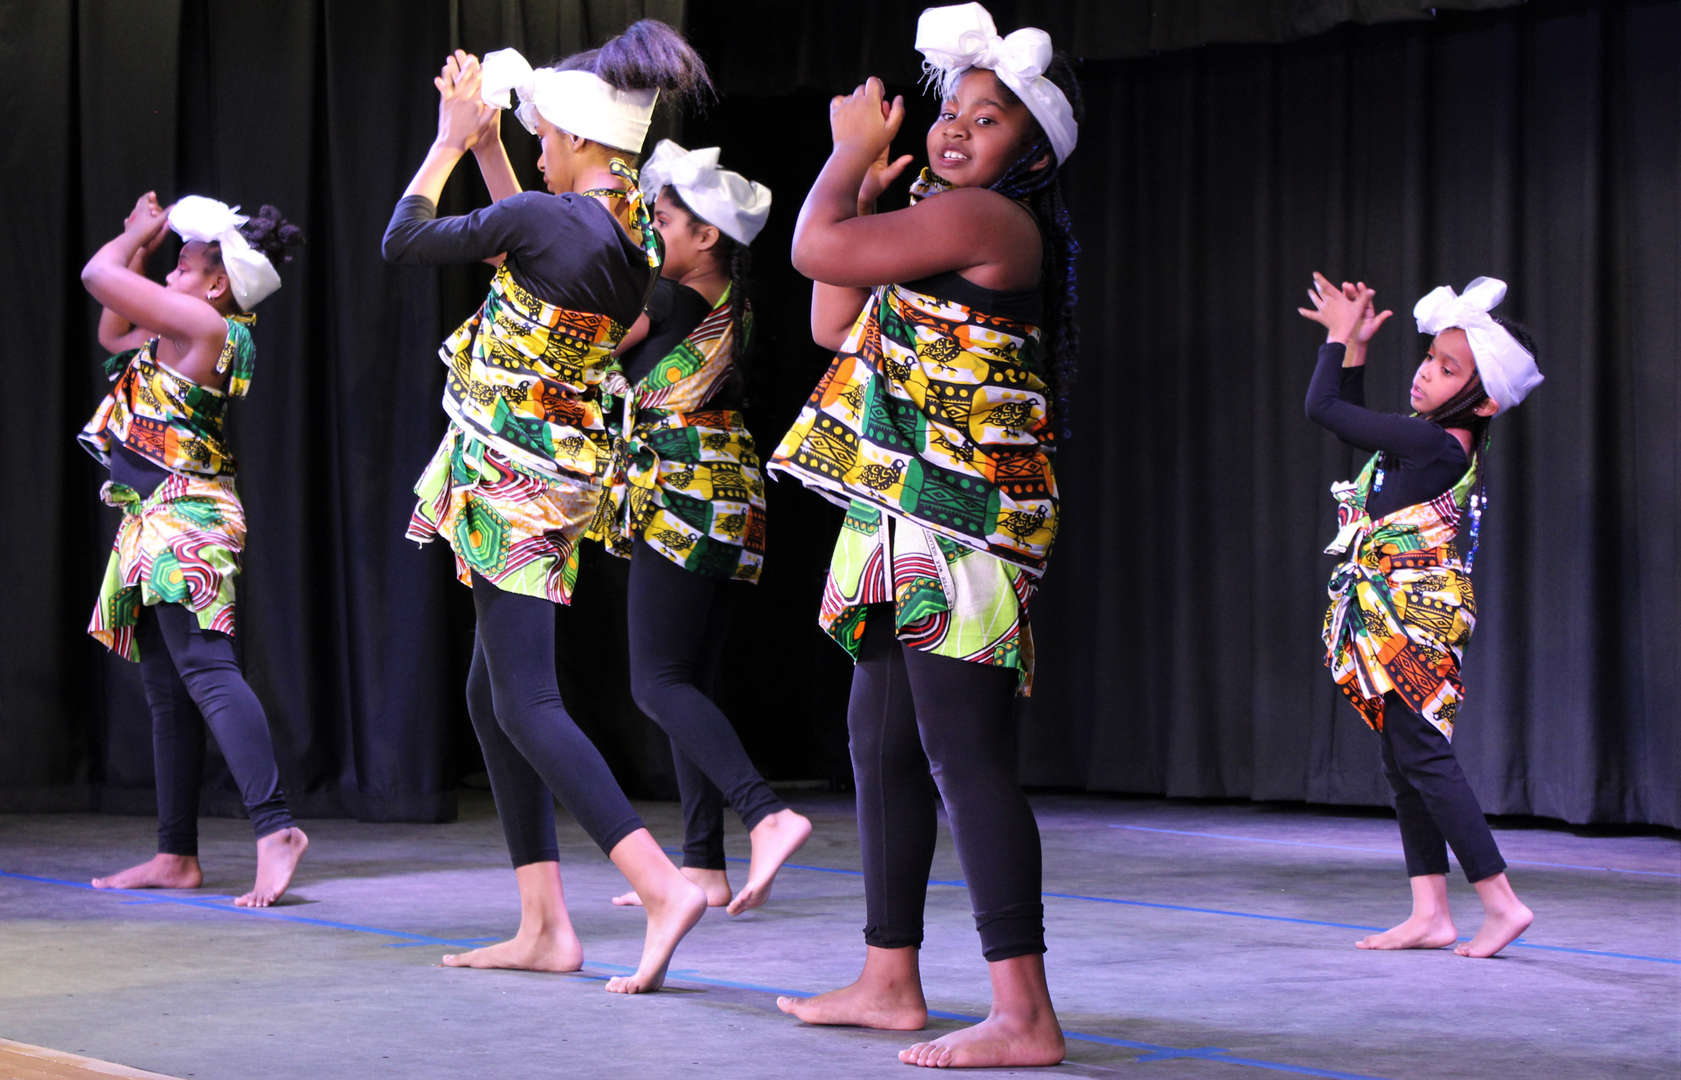 Girls perform African dance during One World Evening.